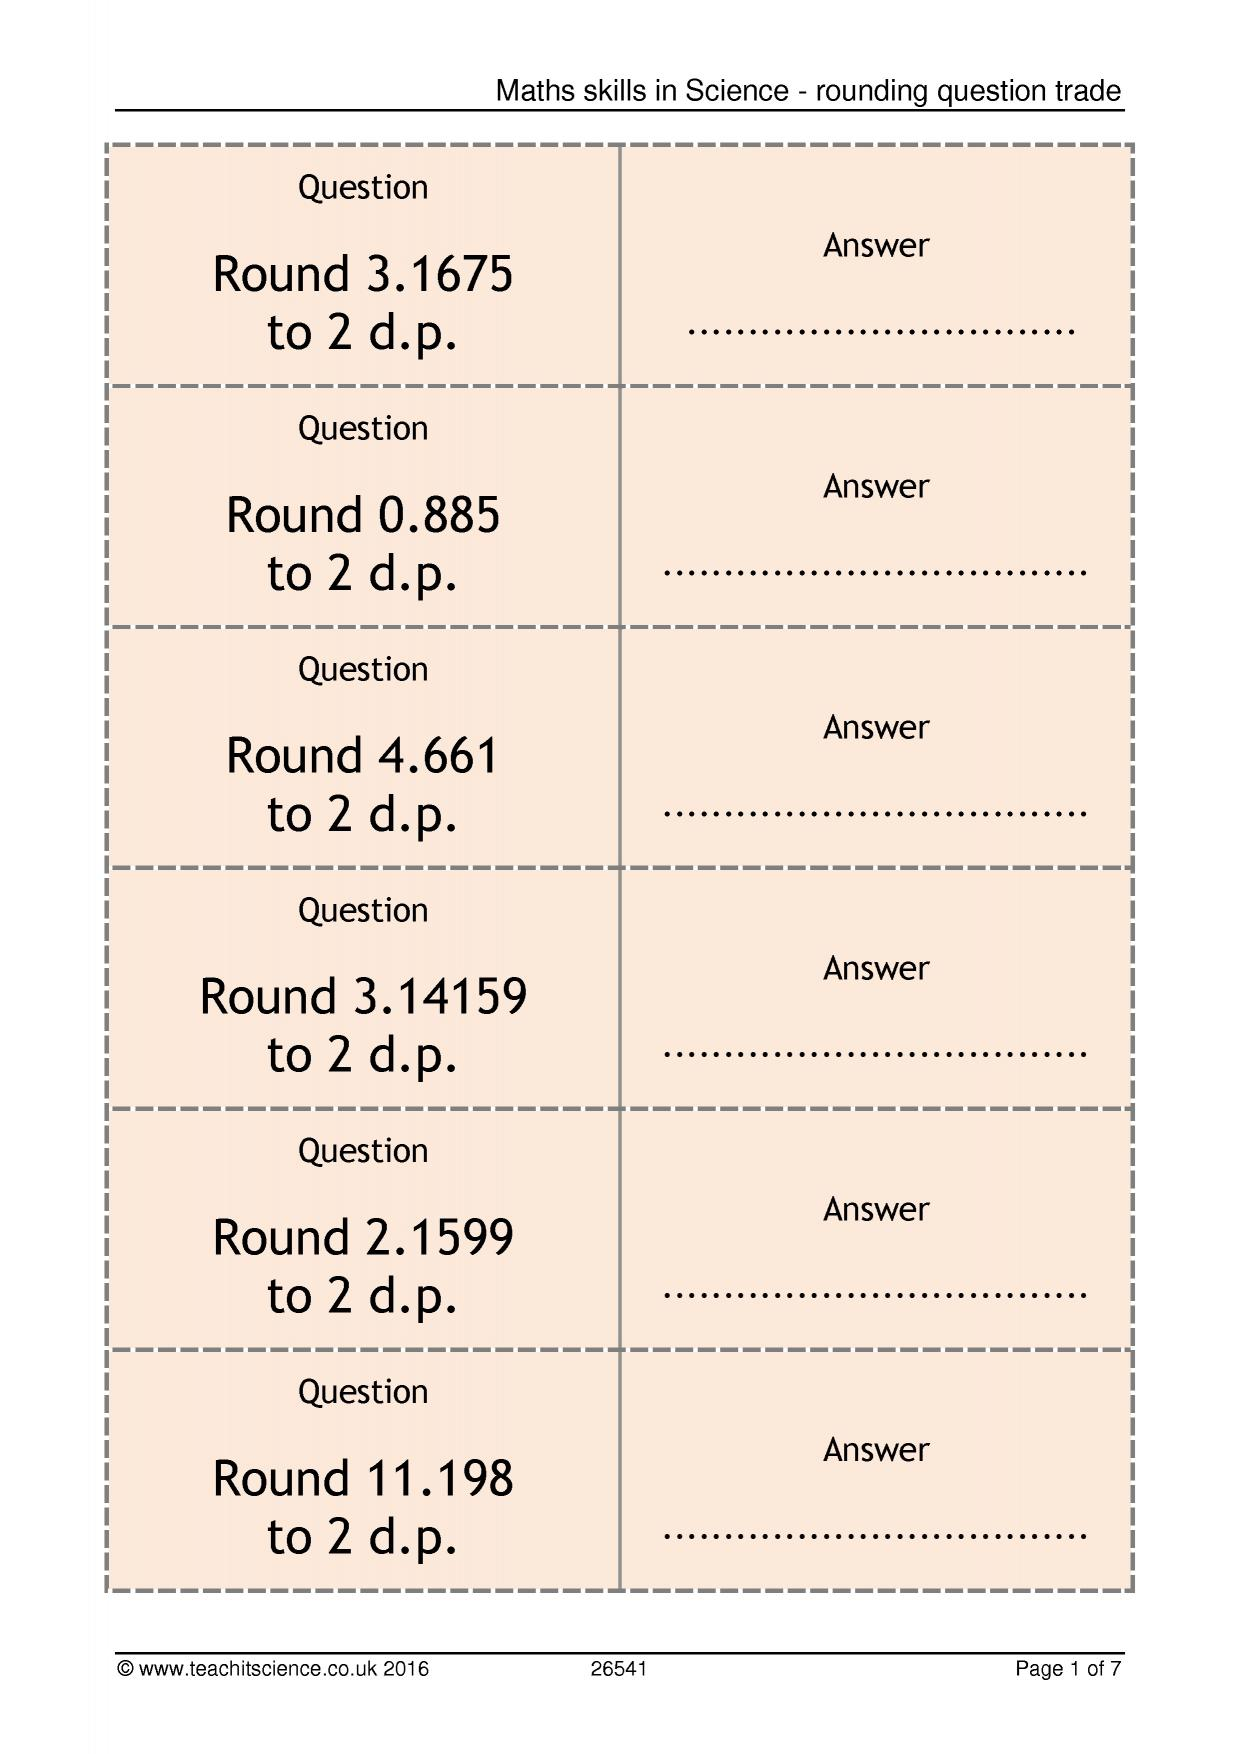 Maths skills in Science - rounding question trade